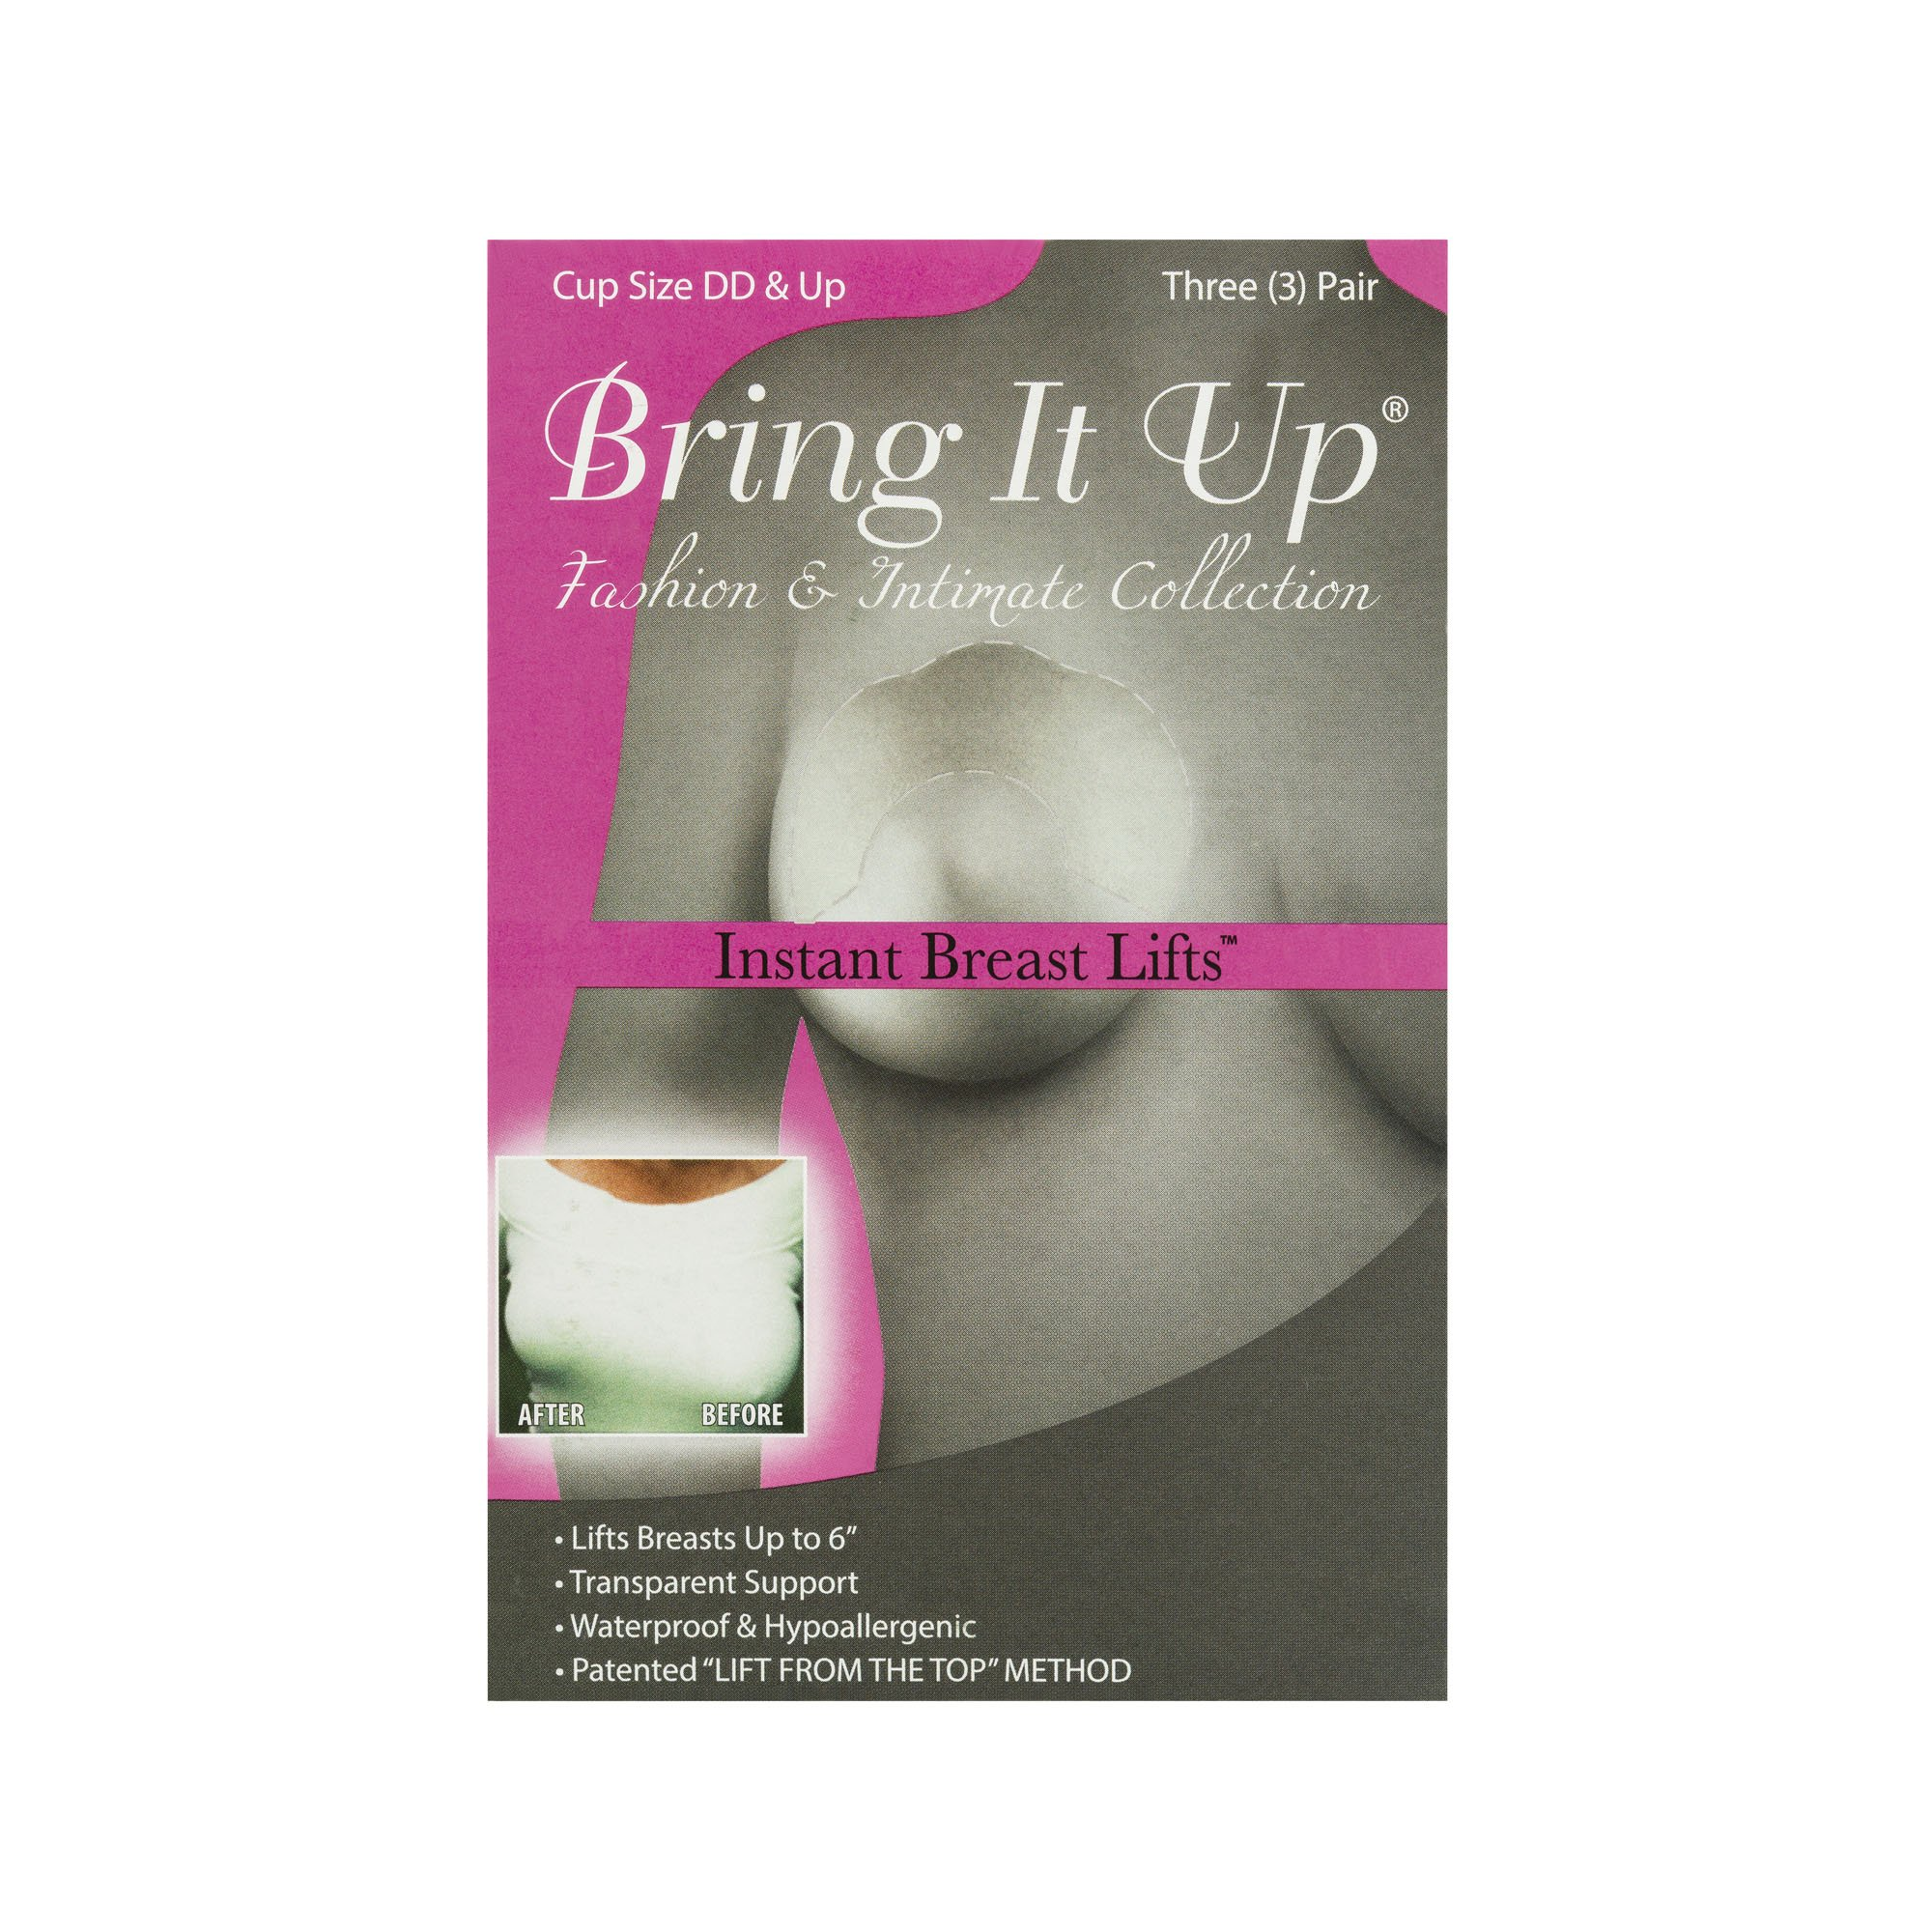 Bring It Up Plus Size Breast Lift, Clear, DD Cup and Up - 1 Pack (contains 3 pairs)